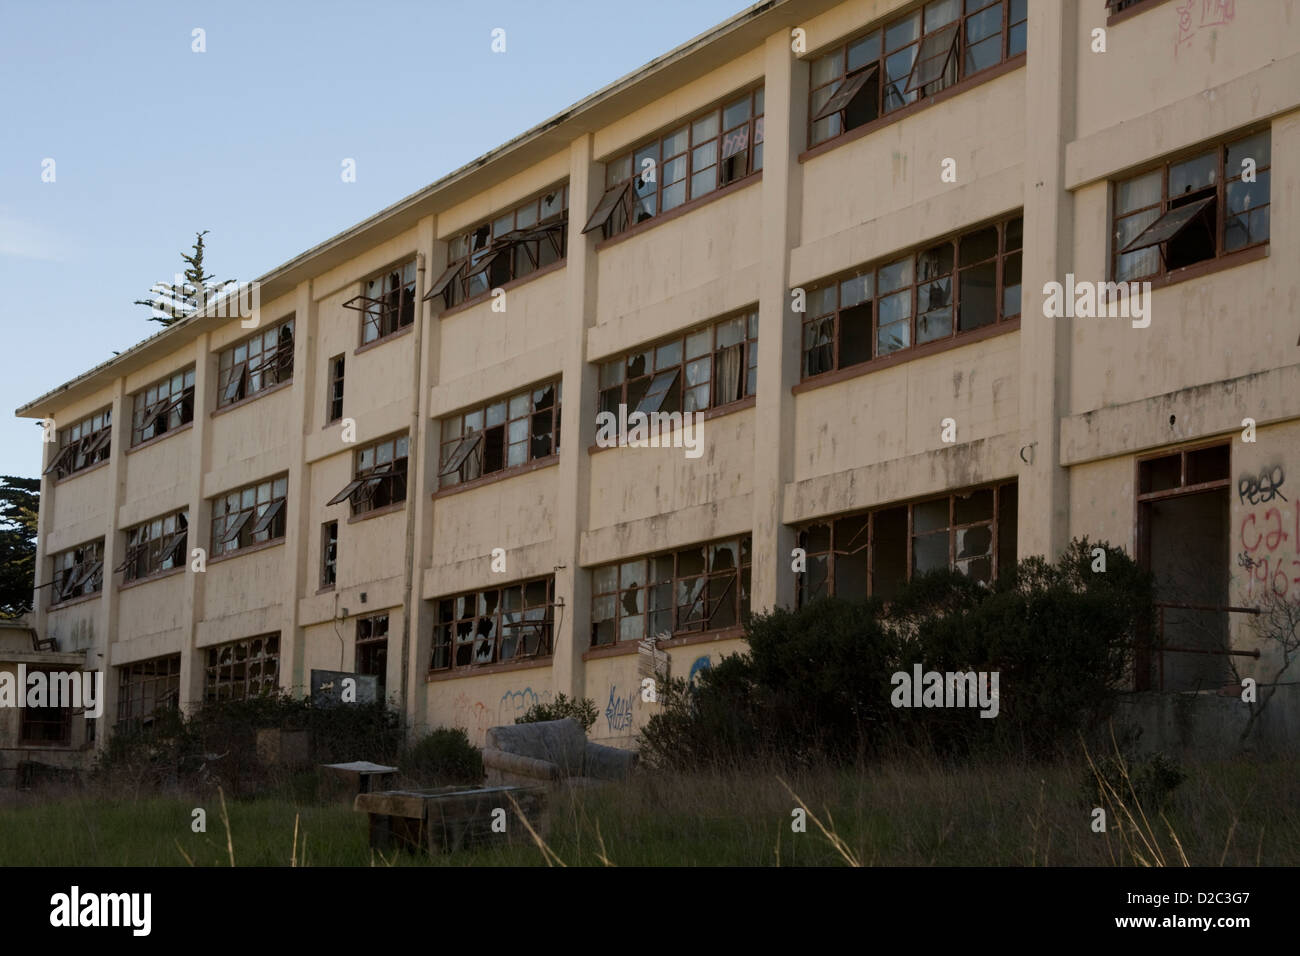 A vandalized abandoned building at Fort Ord, in Seaside, California.  This was once a thriving military base. - Stock Image